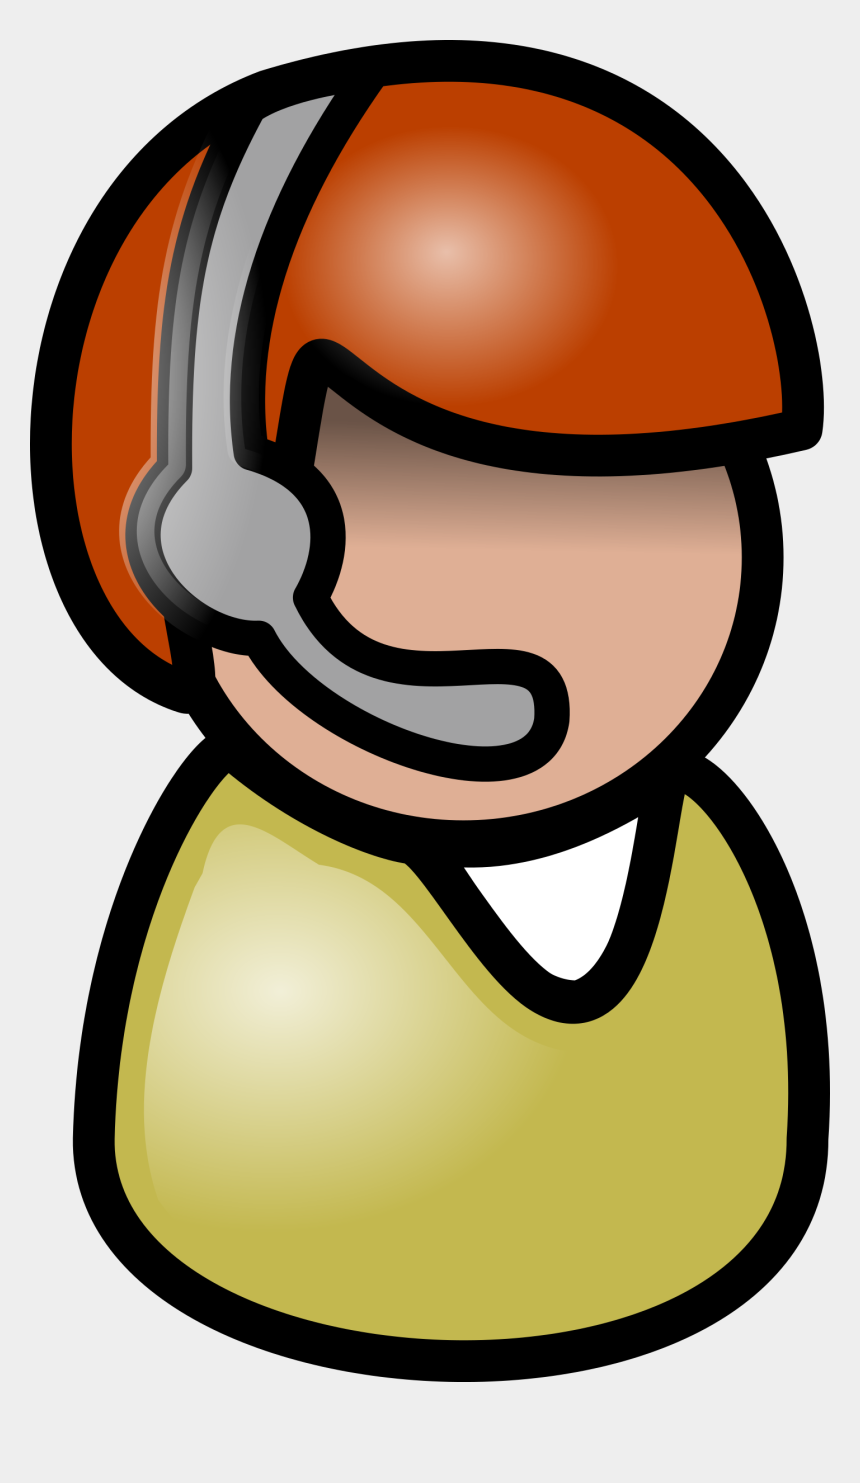 telephone clip art, Cartoons - Clip Art-holidays Computer Icons Telephone Download - People Clip Art